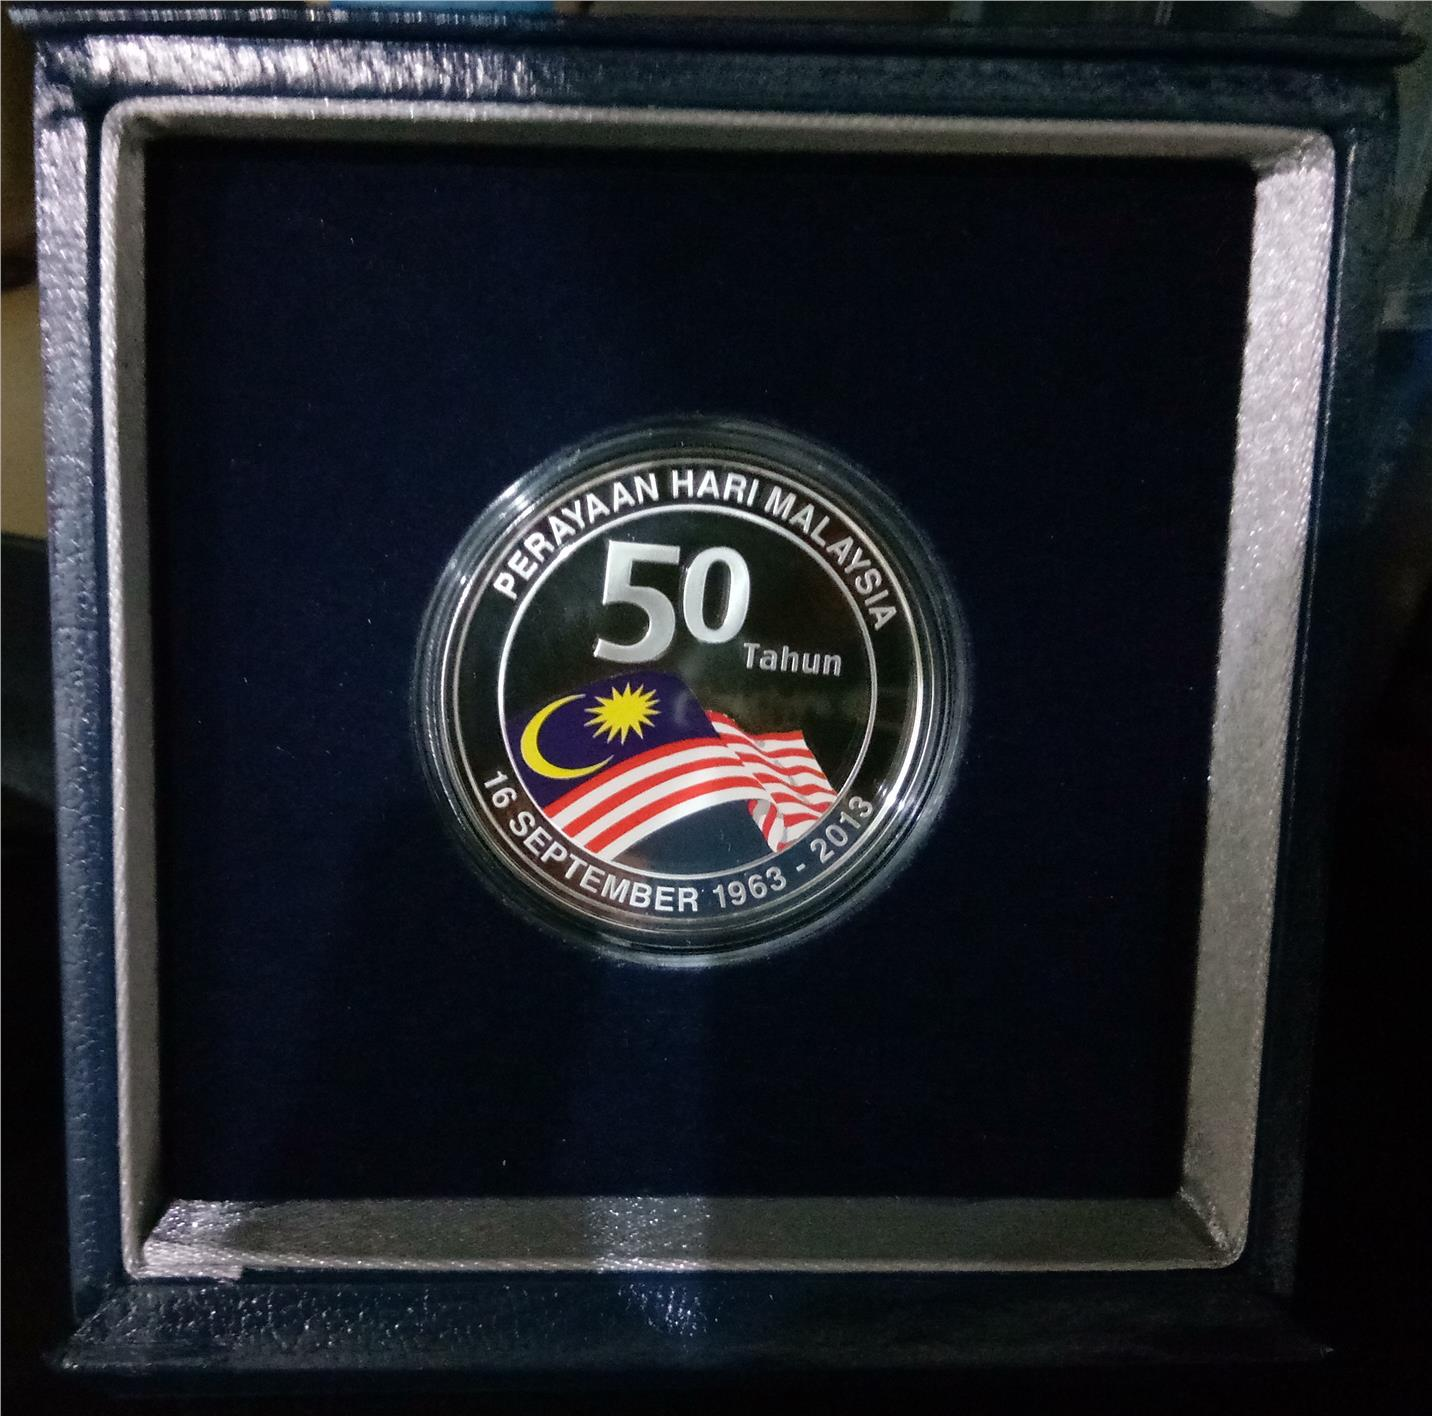 50th Anniversary Malaysia Day, Silver Proof 10 Ringgit RM10 Coin 2013